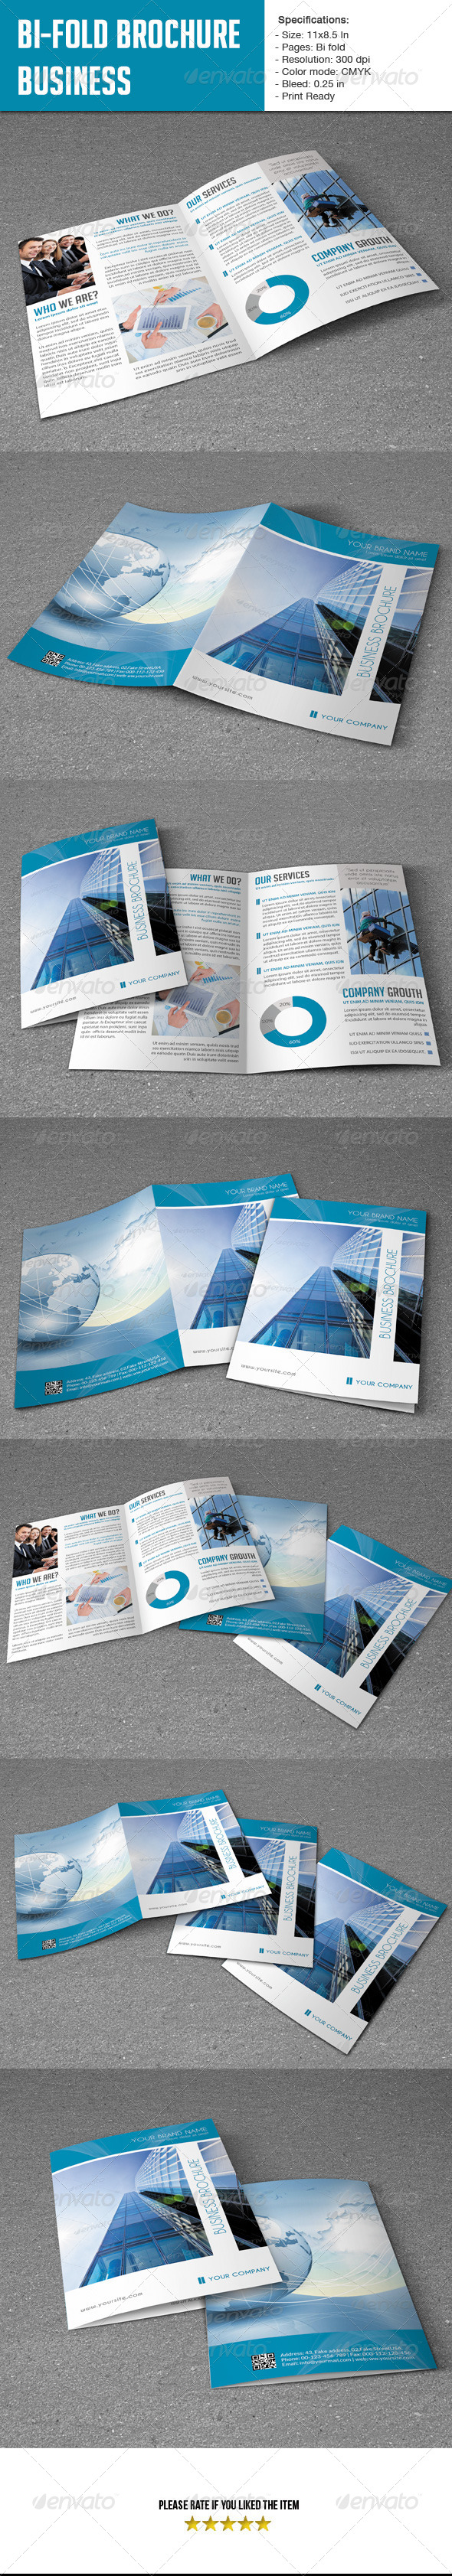 GraphicRiver Bifold Brochure for Business 5925410